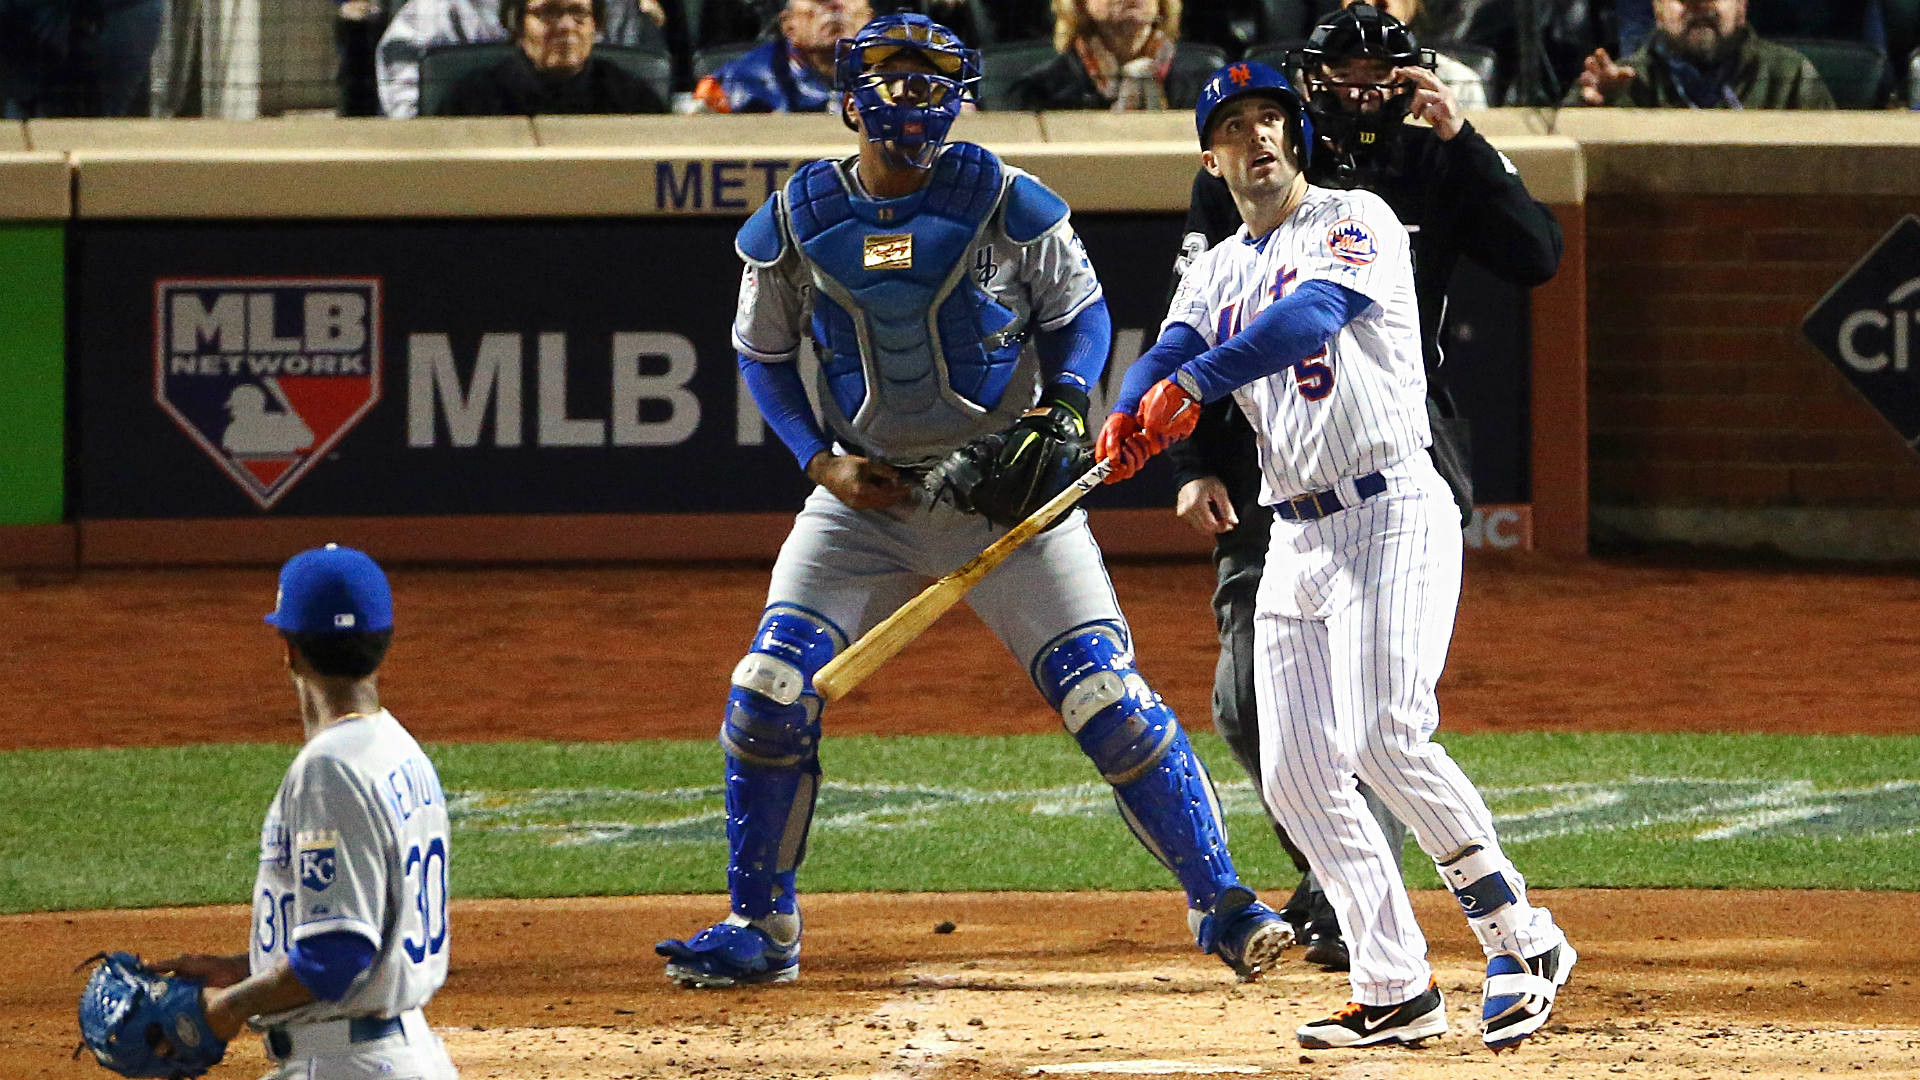 1920x1080 World Series 2015: Mets are all Wright after David provides boost | MLB |  Sporting News